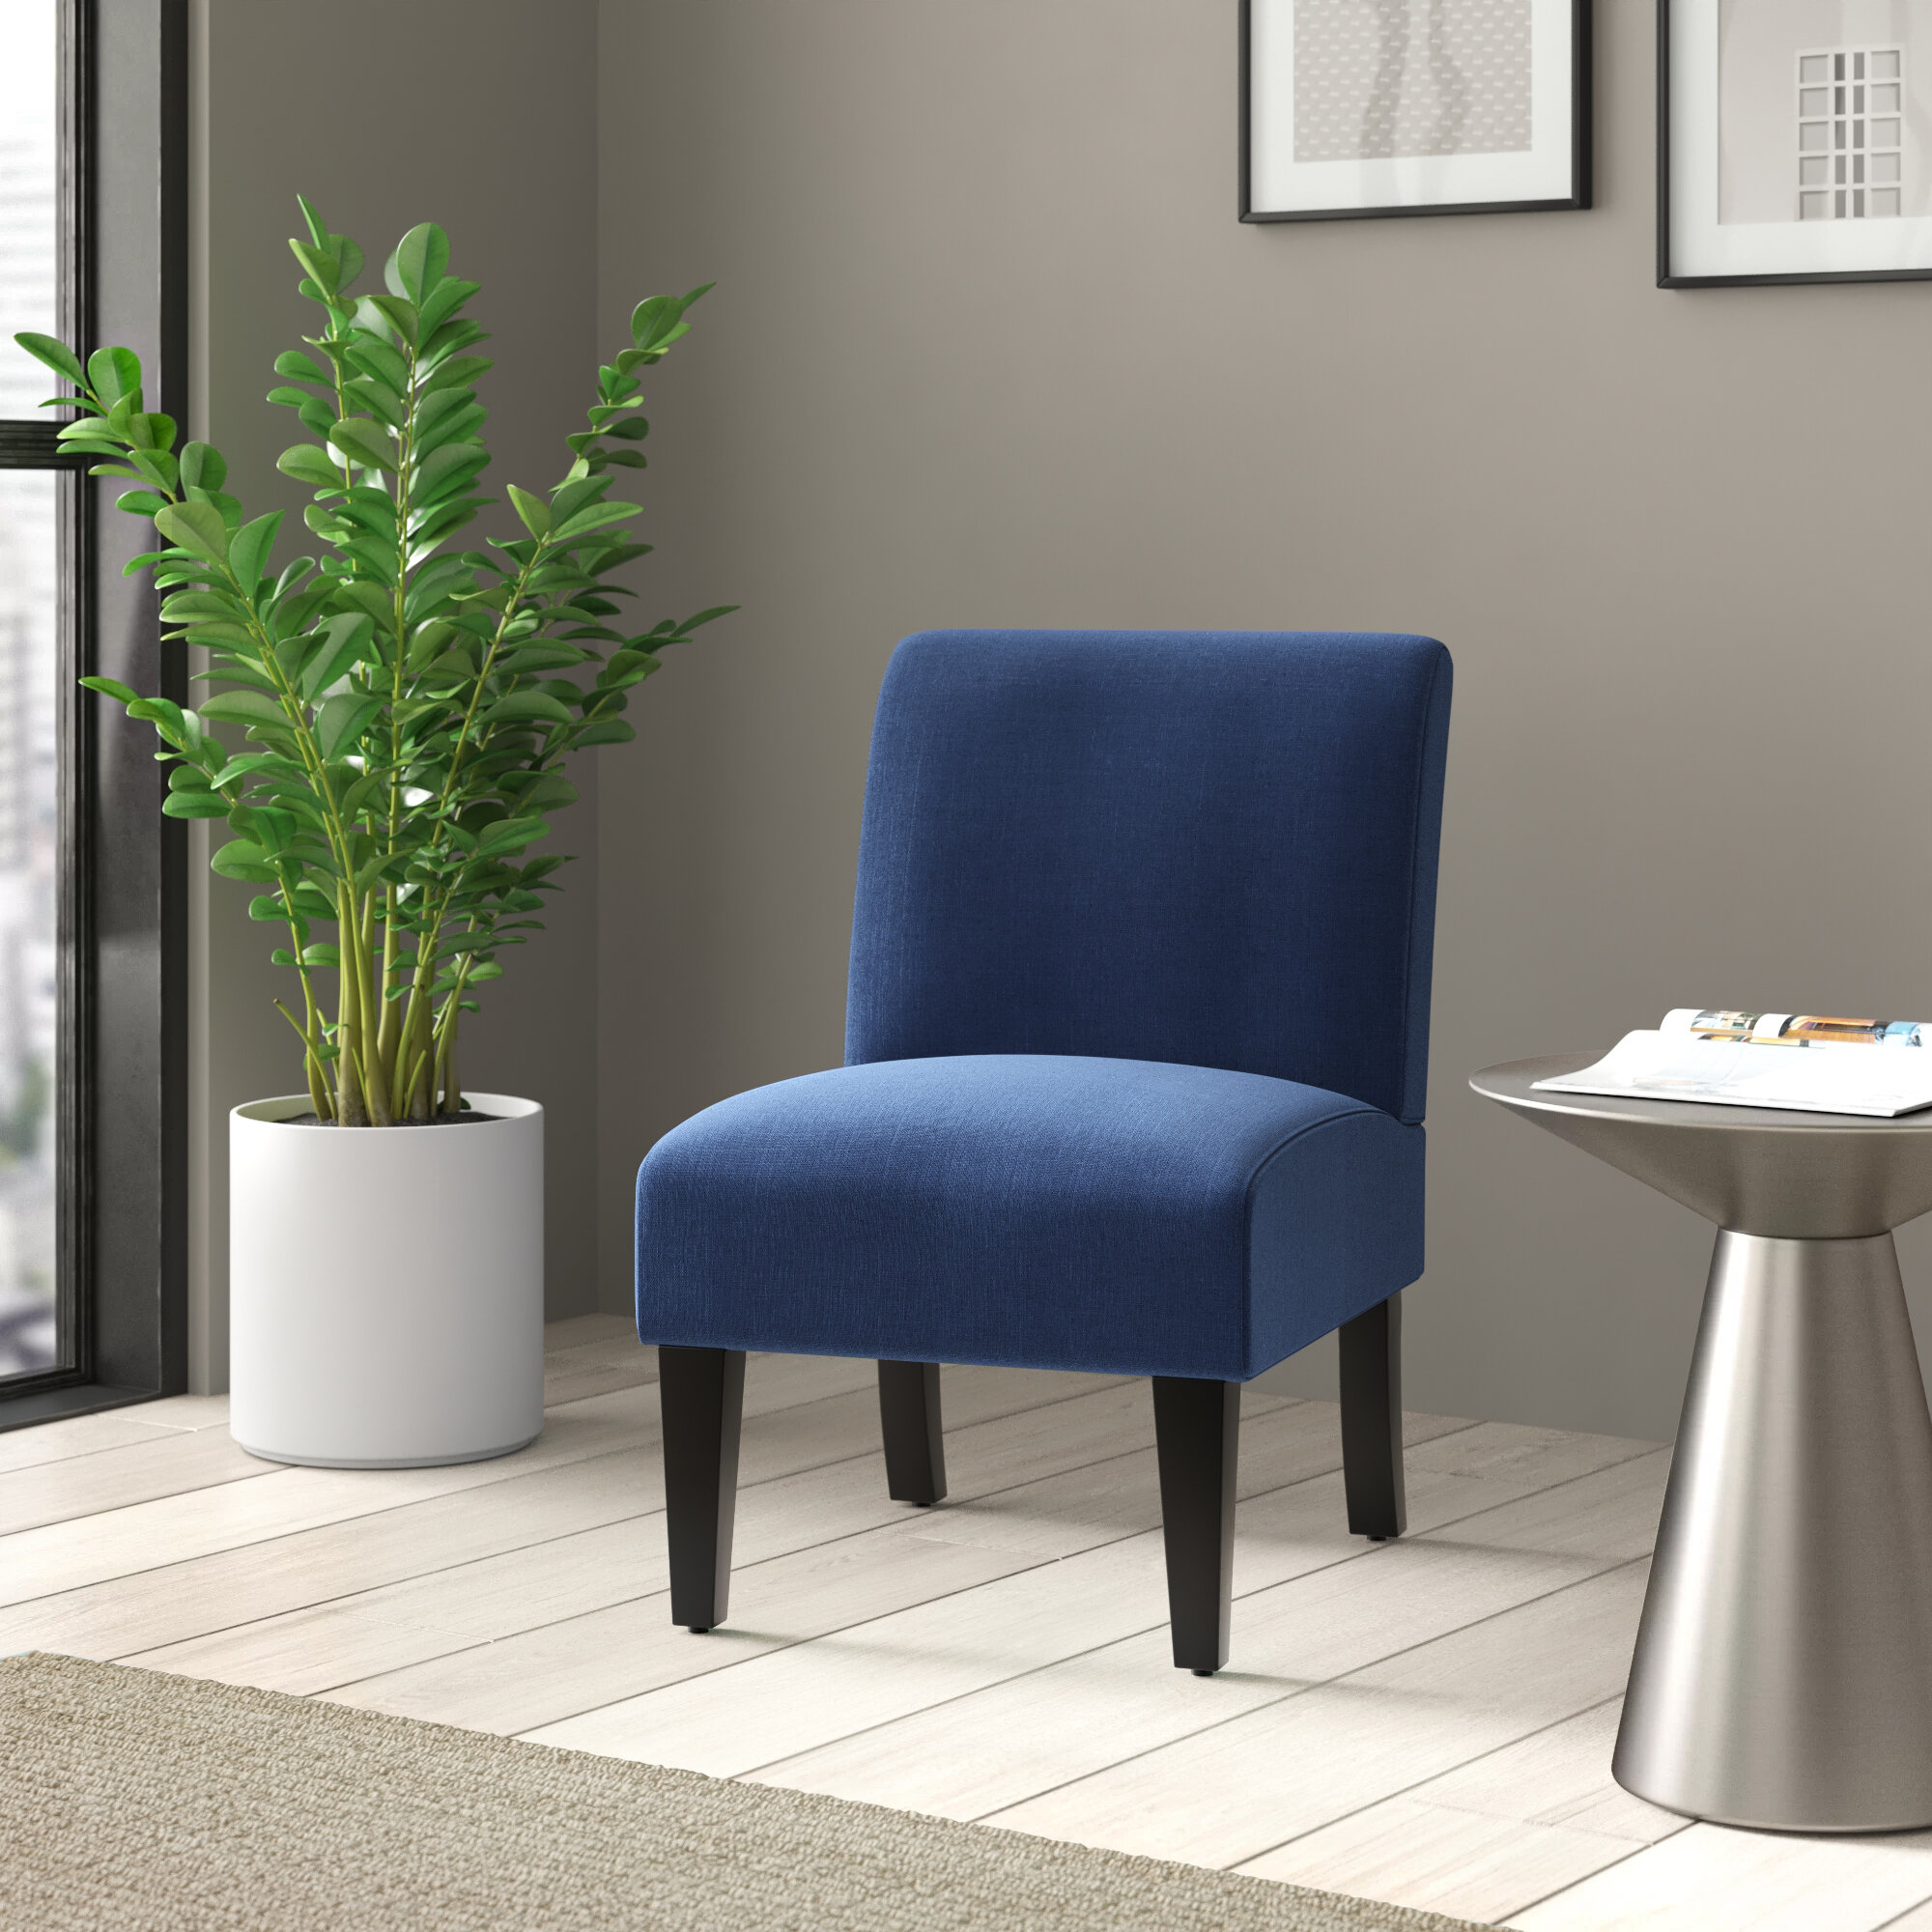 Belleze Armless Contemporary Upholstered Single Curved Slipper Accent Chair Living Room Bedroom – Walmart For Armless Upholstered Slipper Chairs (View 4 of 15)